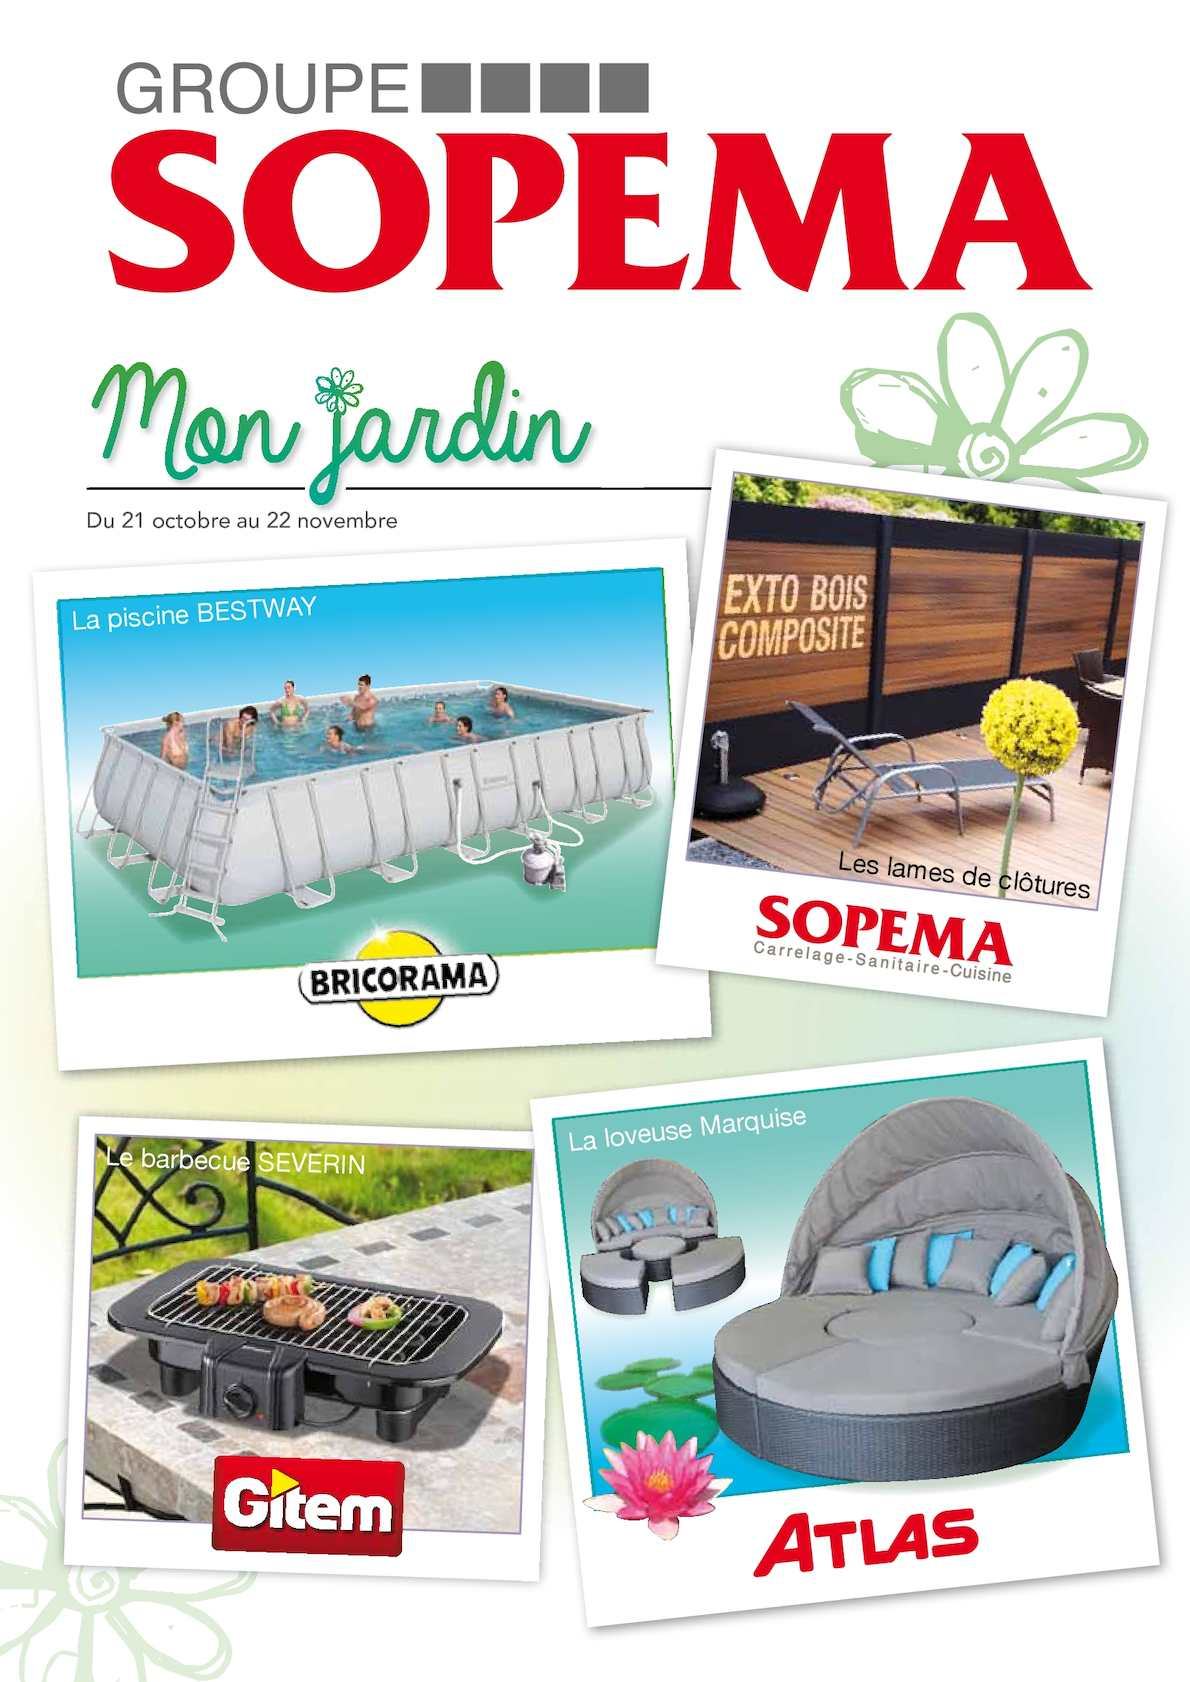 Calam o catalogue jardin du 21 10 2015 au 22 11 2015 for Catalogue jardin gamma 2015